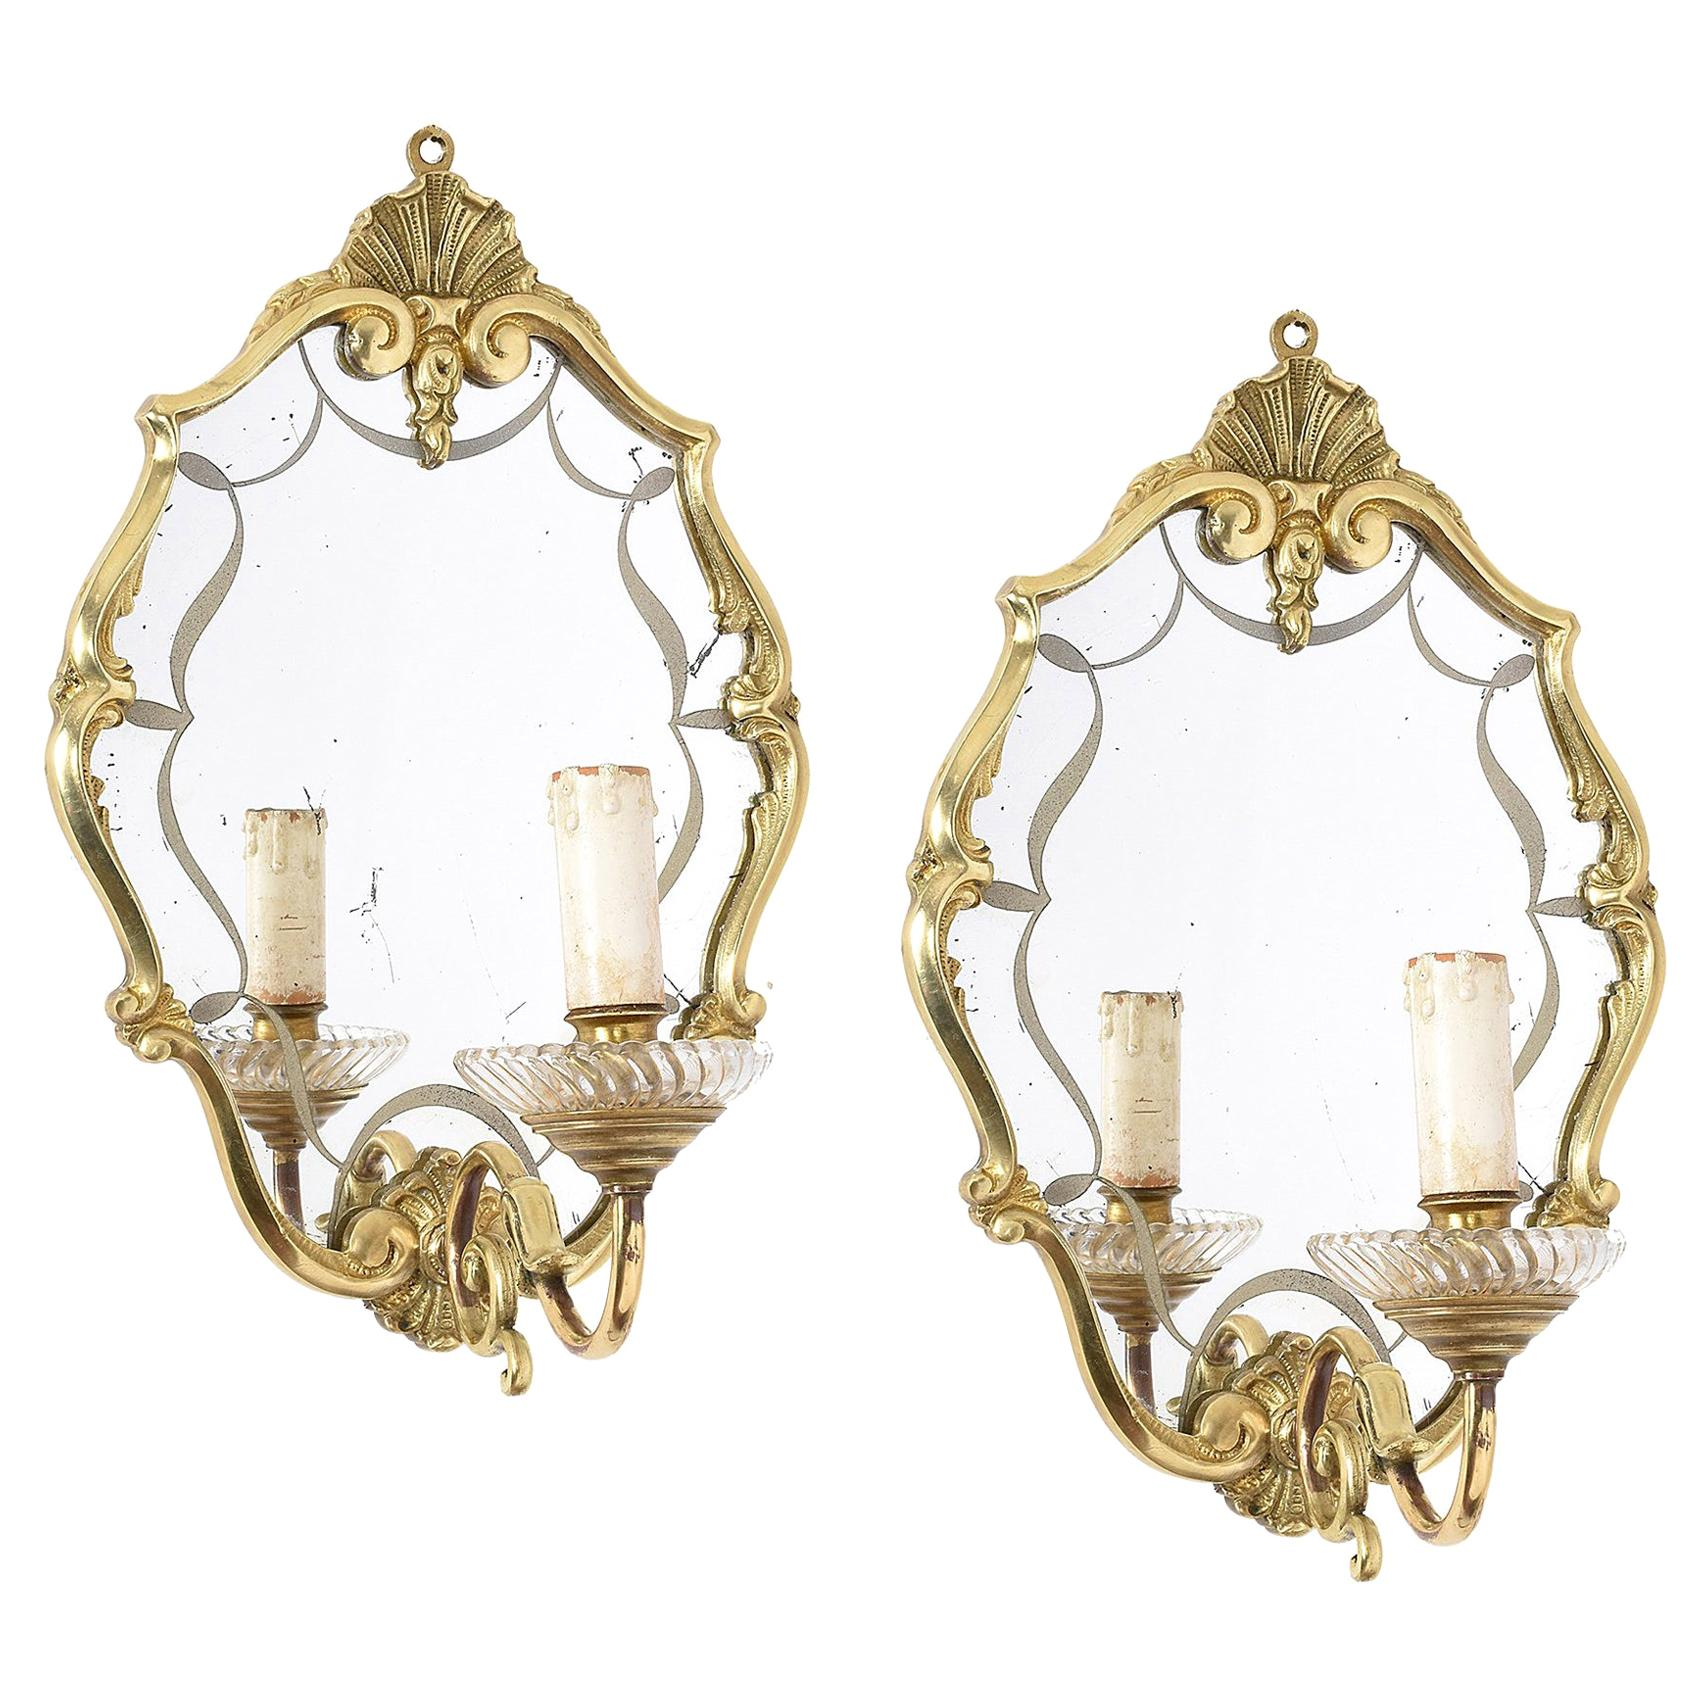 Pair of Brass Wall Lights in Venetian Neoclassical Style with Mirror, 1900s